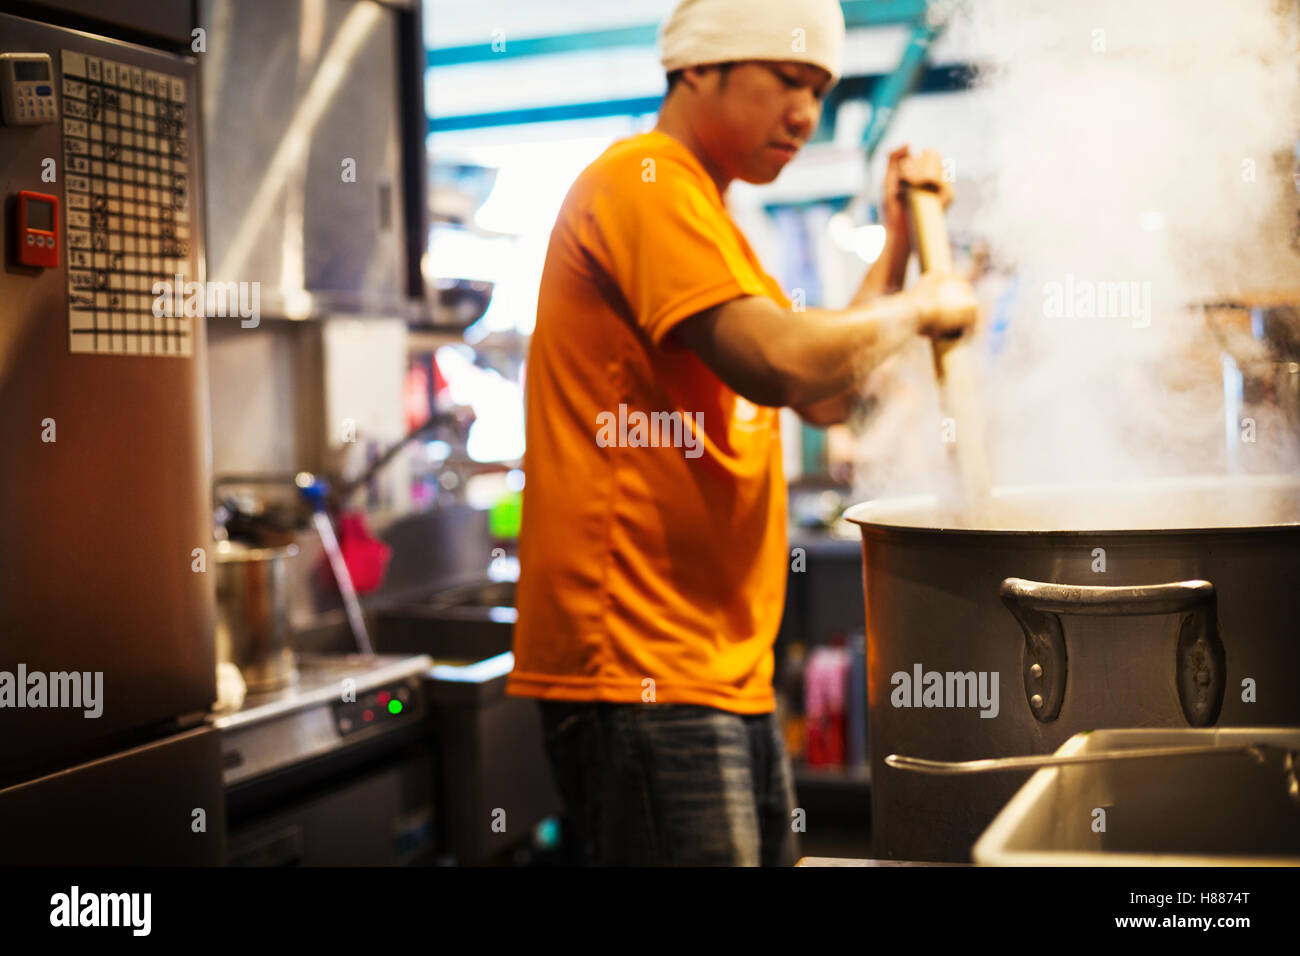 The ramen noodle shop. Staff preparing food in a steam filled kitchen. - Stock Image